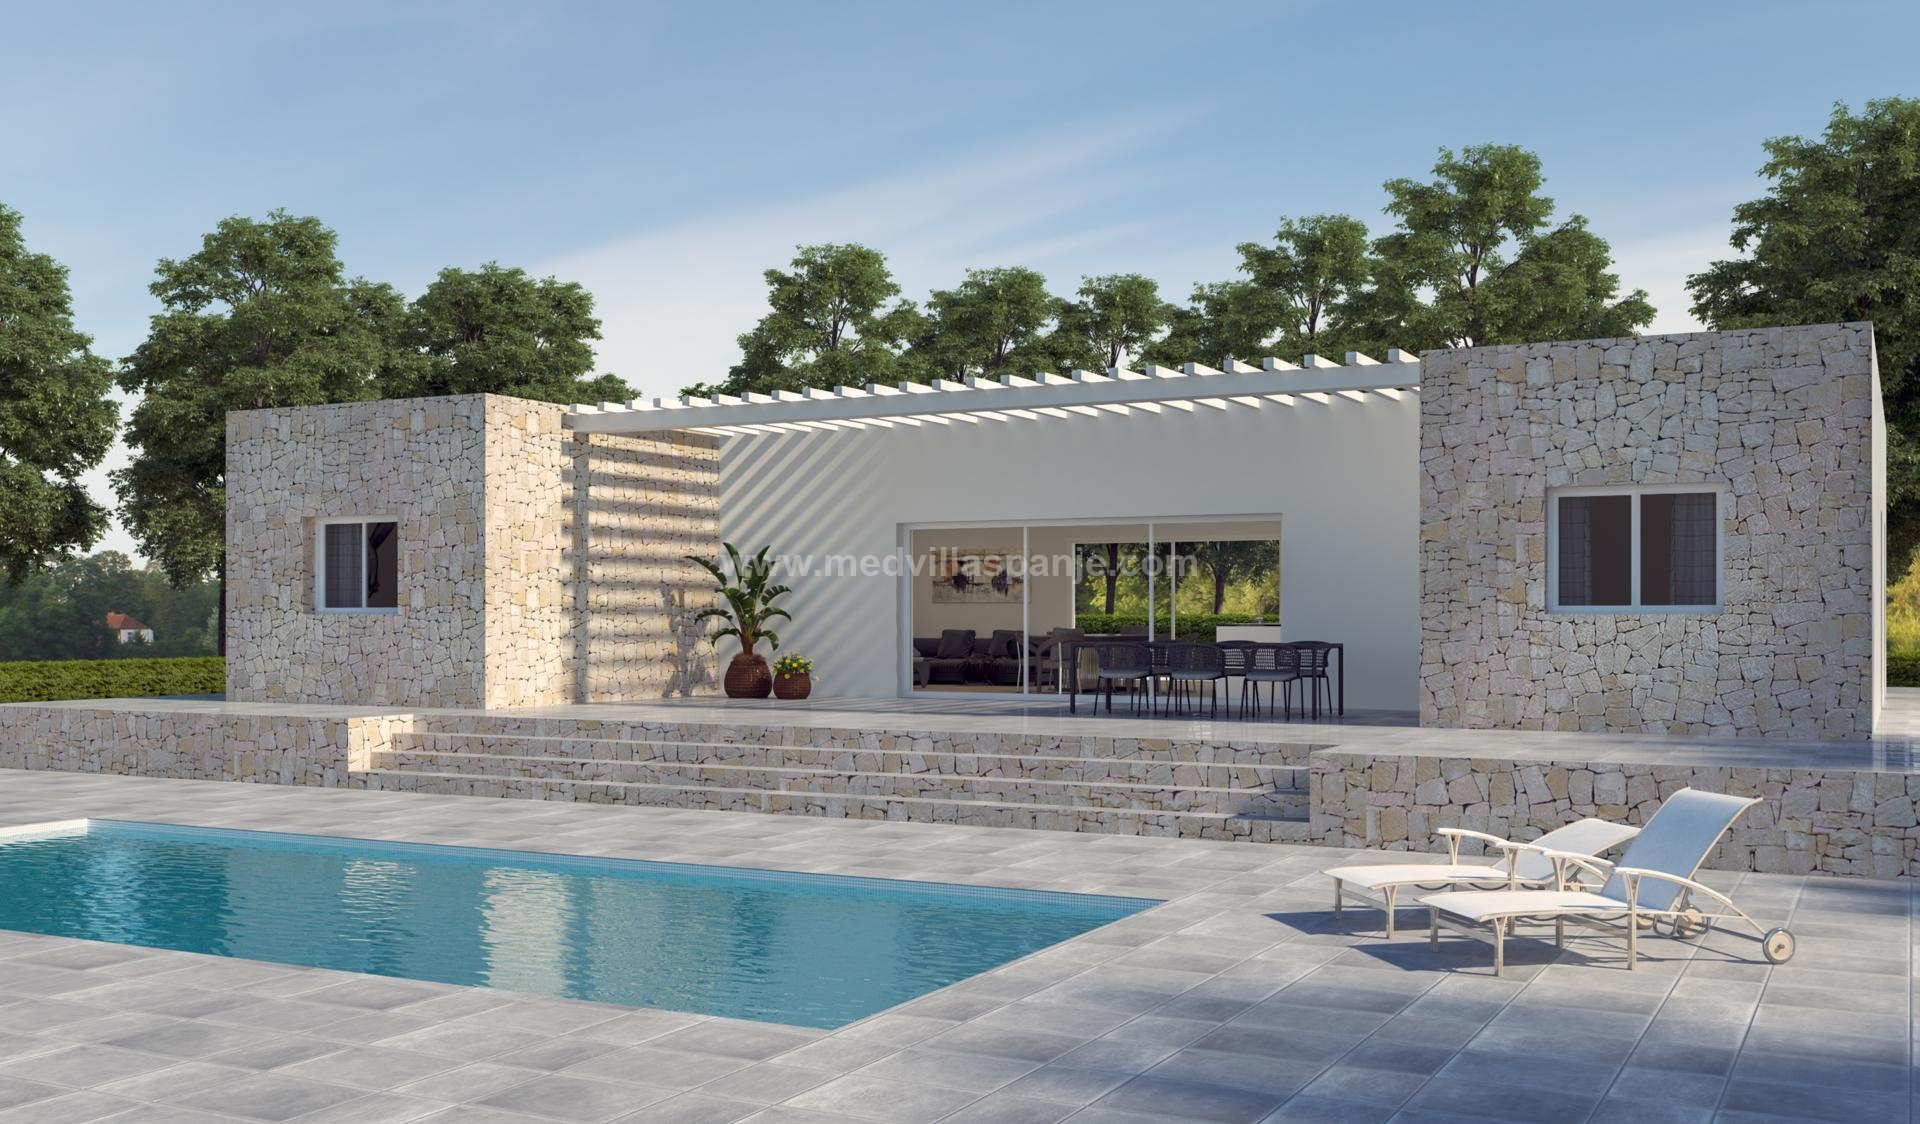 Off-plan villa in Hondon de las Nieves in Medvilla Spanje